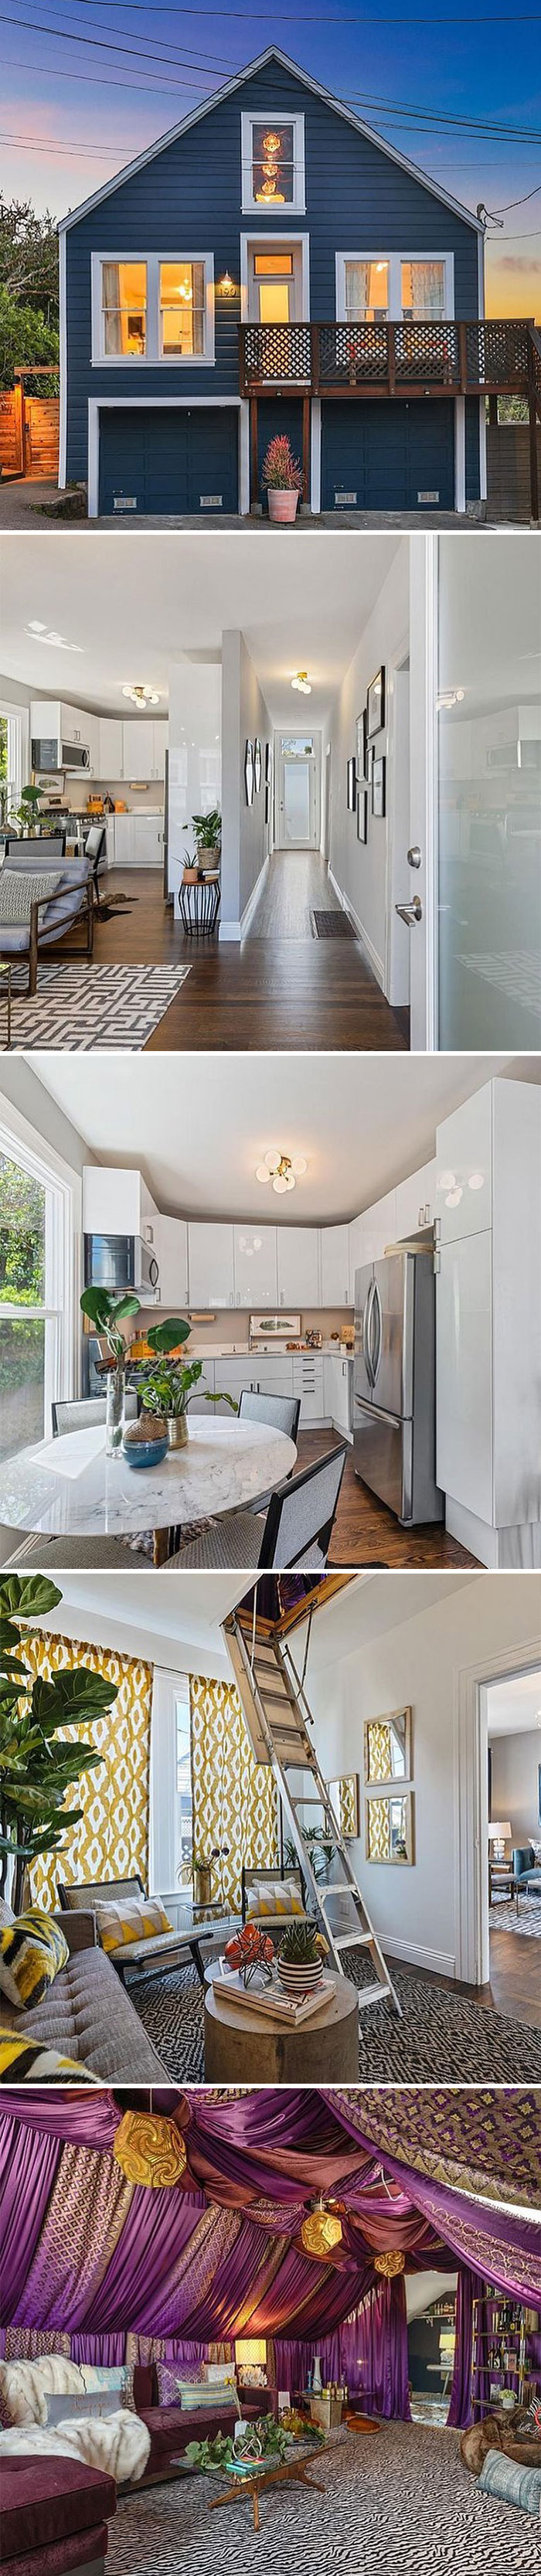 You'll Never Leave Home Now. $1,150,000. 2 Bd, 1 Ba. 1,209 Sf